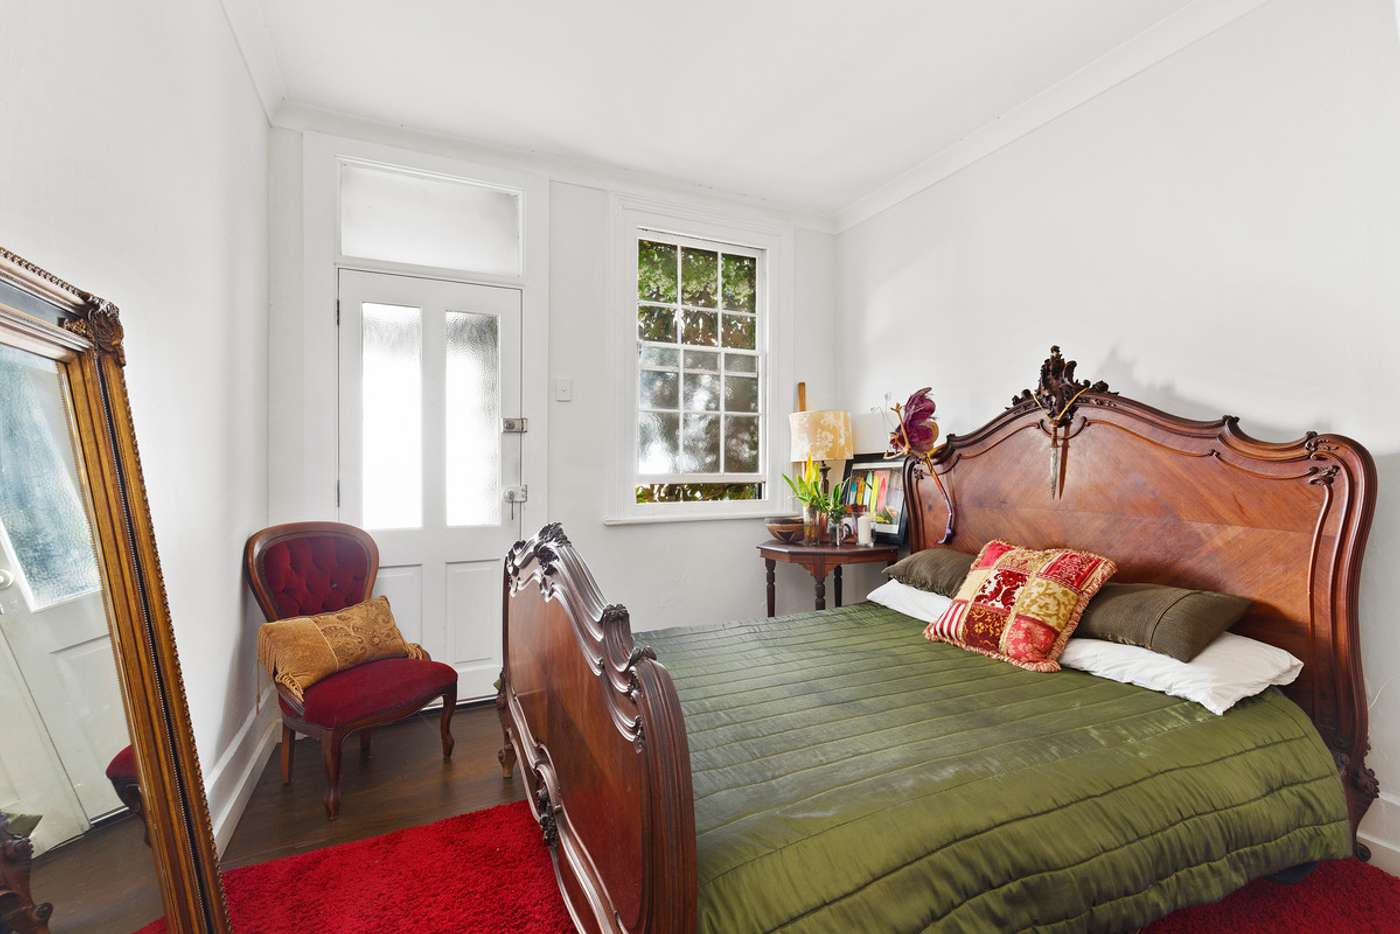 Seventh view of Homely house listing, 2 Victoria Place, Paddington NSW 2021